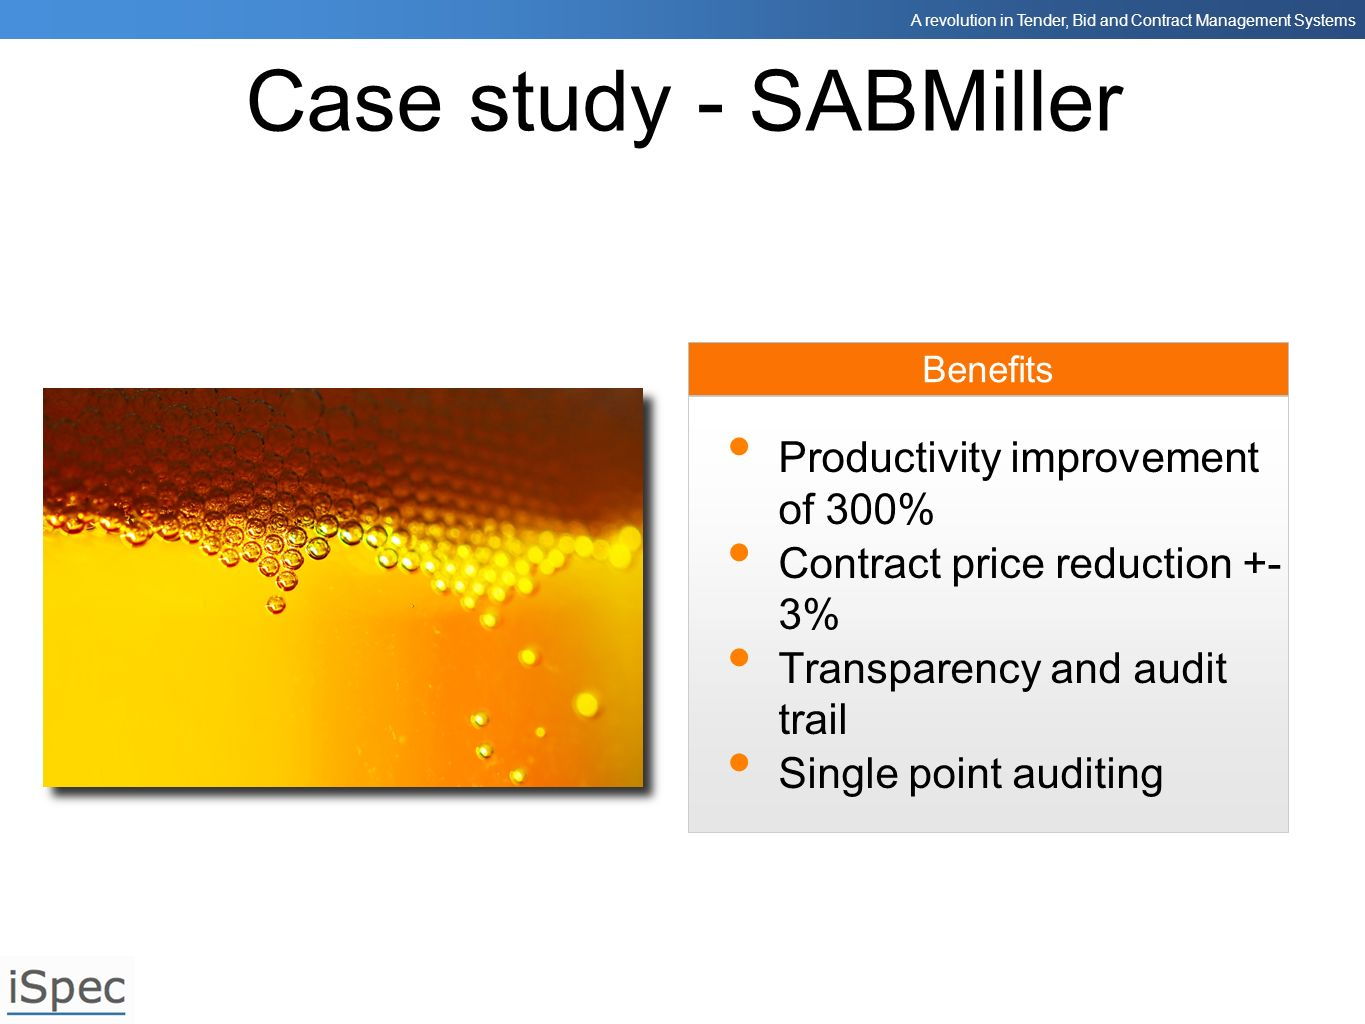 Case study - SABMiller Productivity improvement of 300%